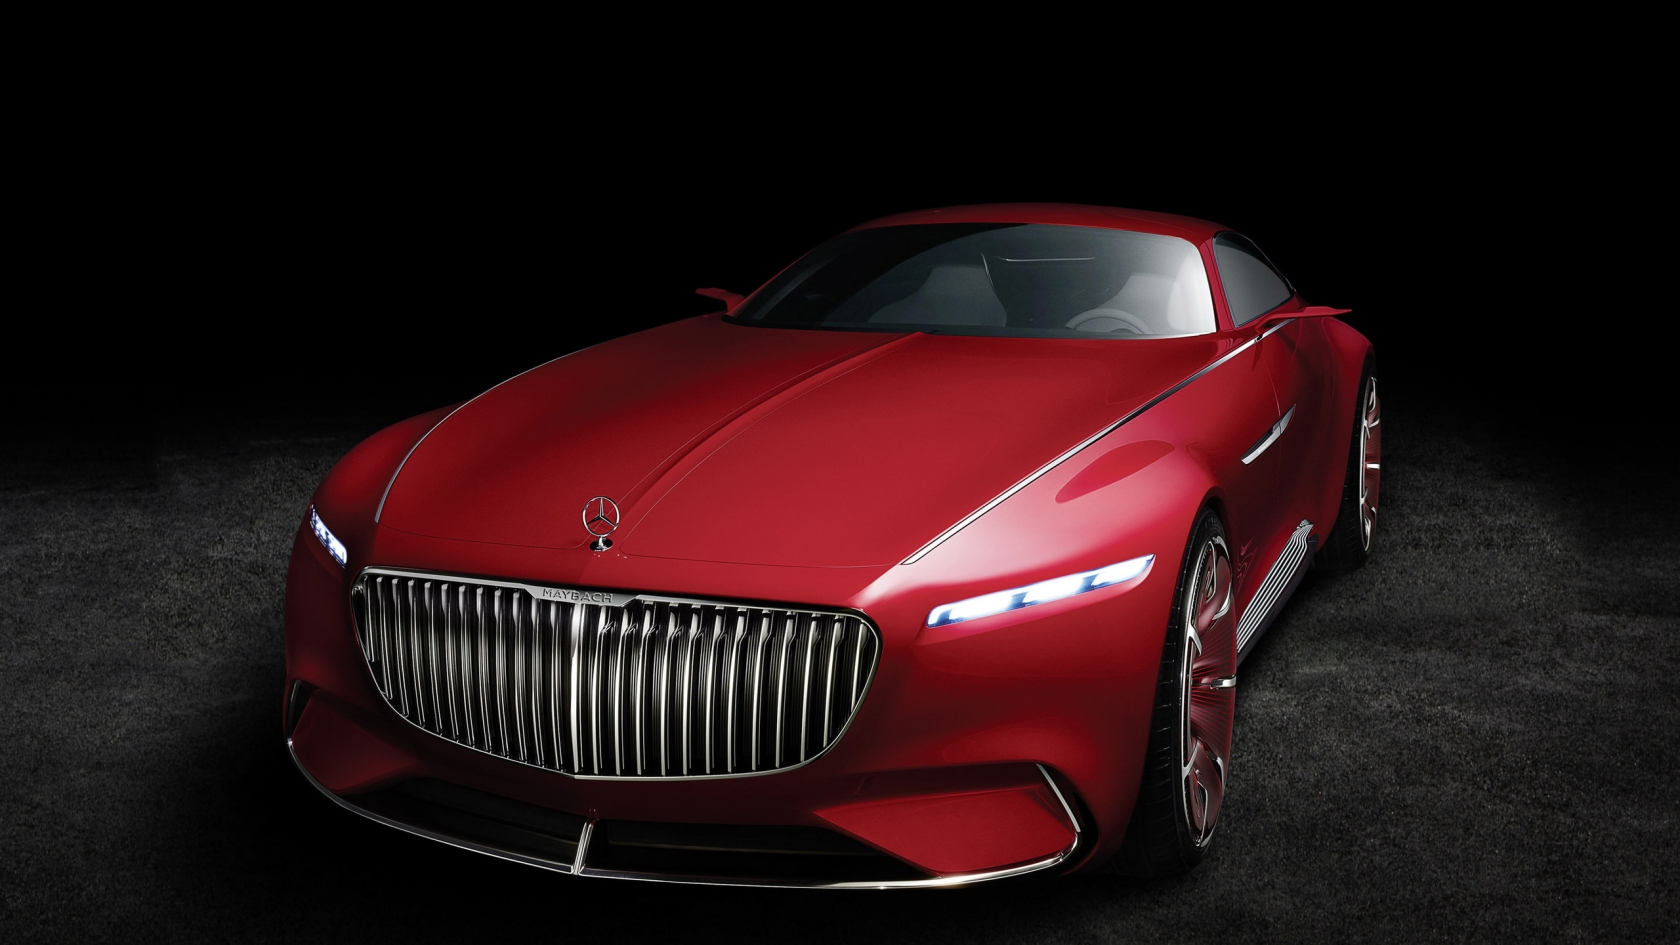 2016 Vision Mercedes Maybach 6 for 1680 x 945 HDTV resolution